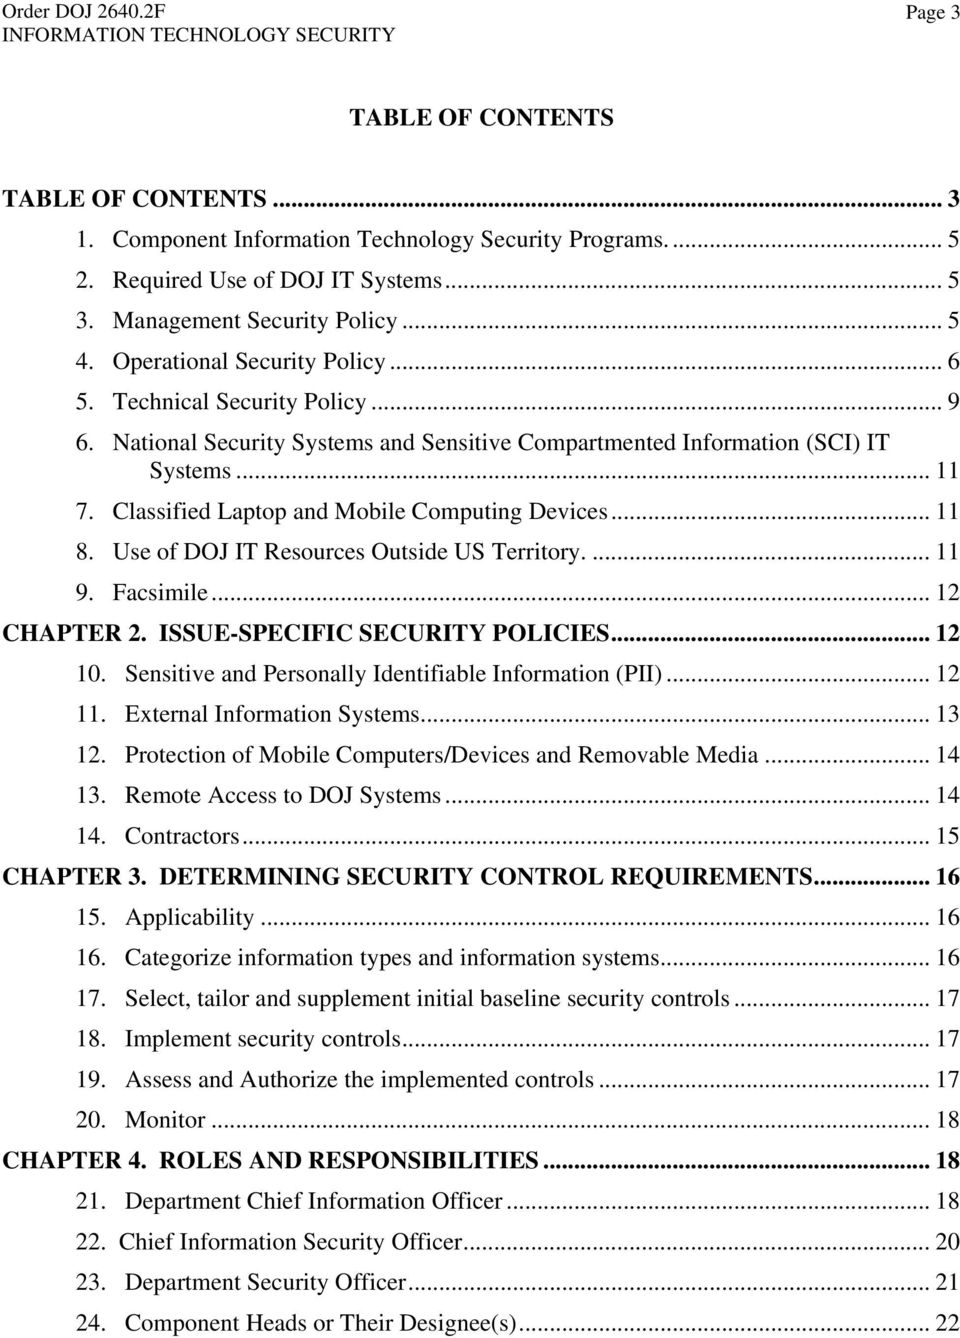 Classified Laptop and Mobile Computing Devices... 11 8. Use of DOJ IT Resources Outside US Territory.... 11 9. Facsimile... 12 CHAPTER 2. ISSUE-SPECIFIC SECURITY POLICIES... 12 10.